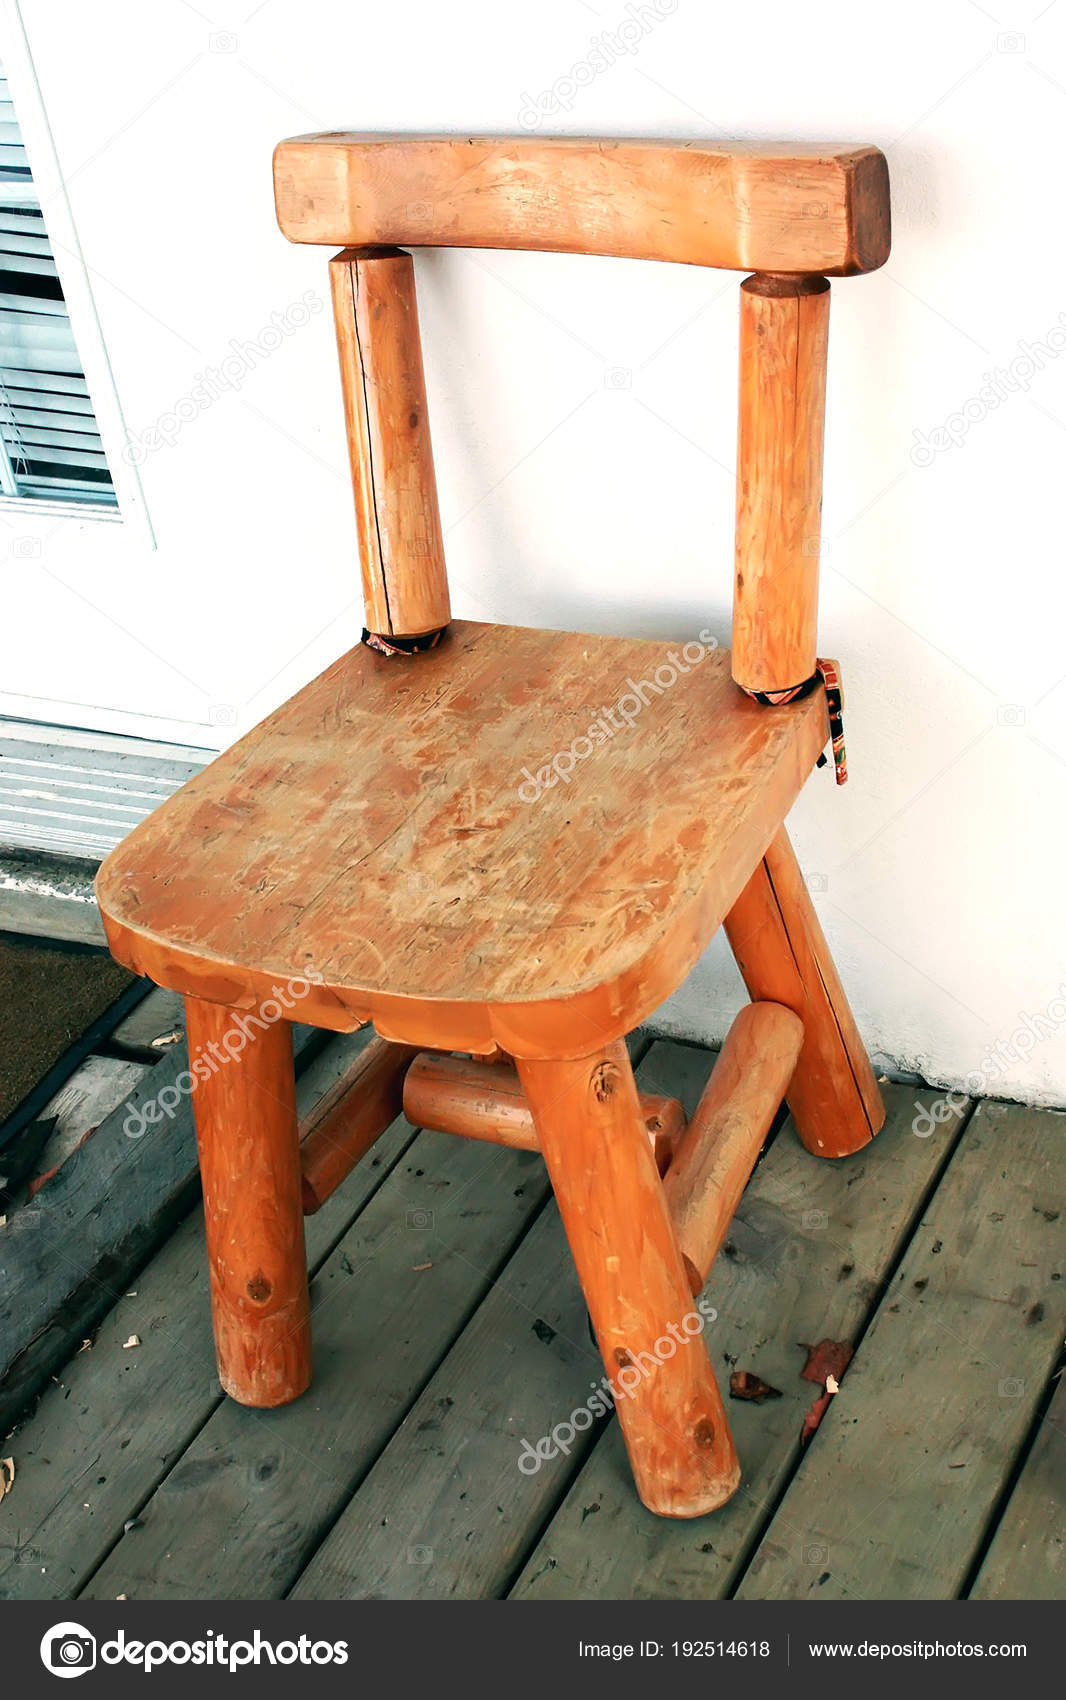 Surprising Old Fashioned Wooden Deck Chairs Vintage Wood Chair On Machost Co Dining Chair Design Ideas Machostcouk